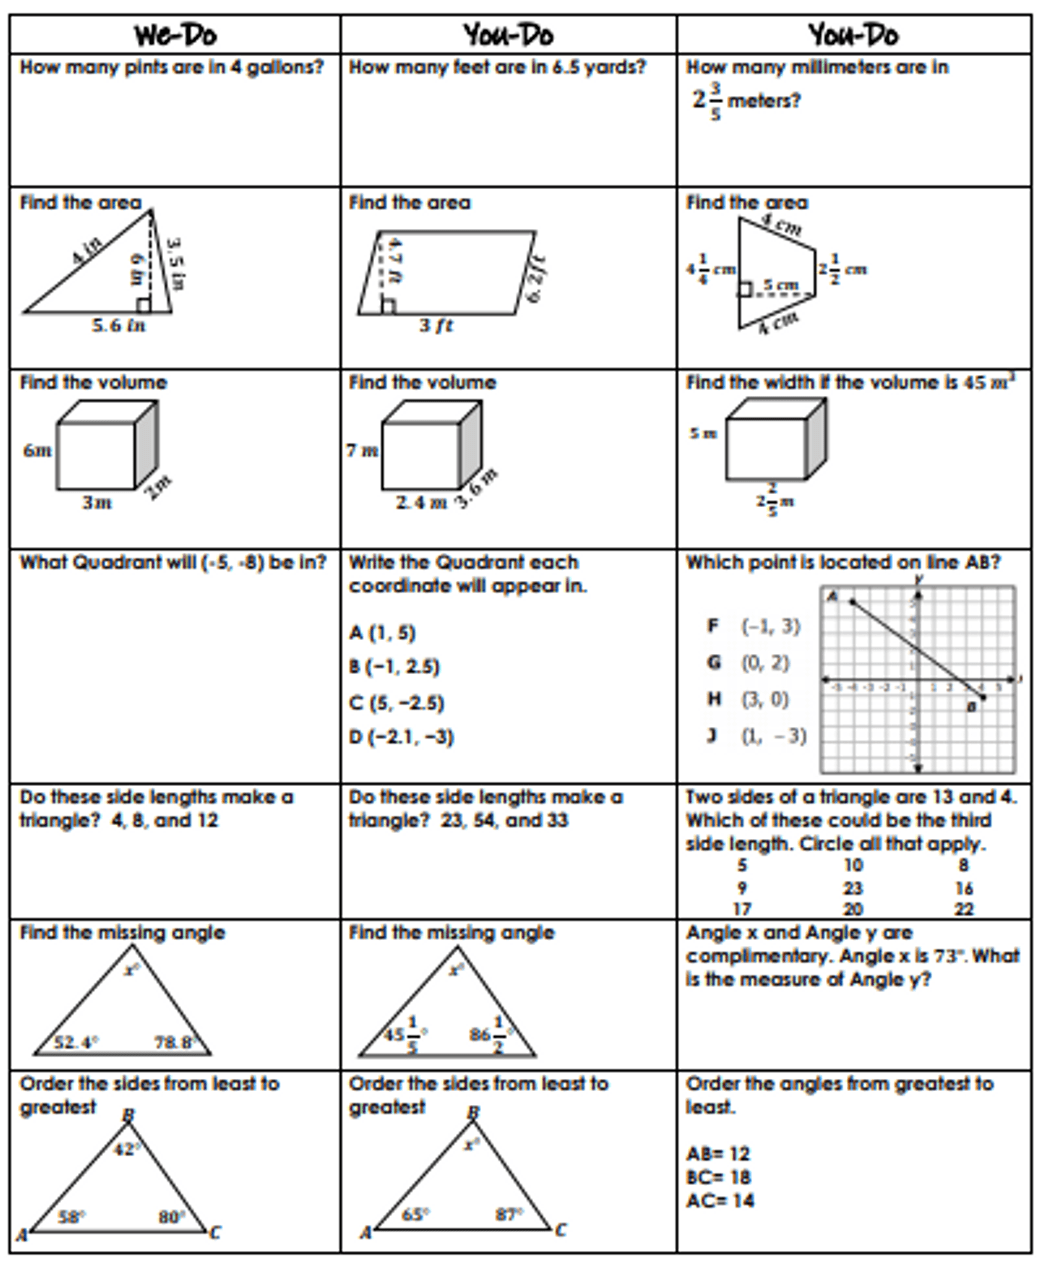 medium resolution of 6th Grade Geometry Review- We-Do